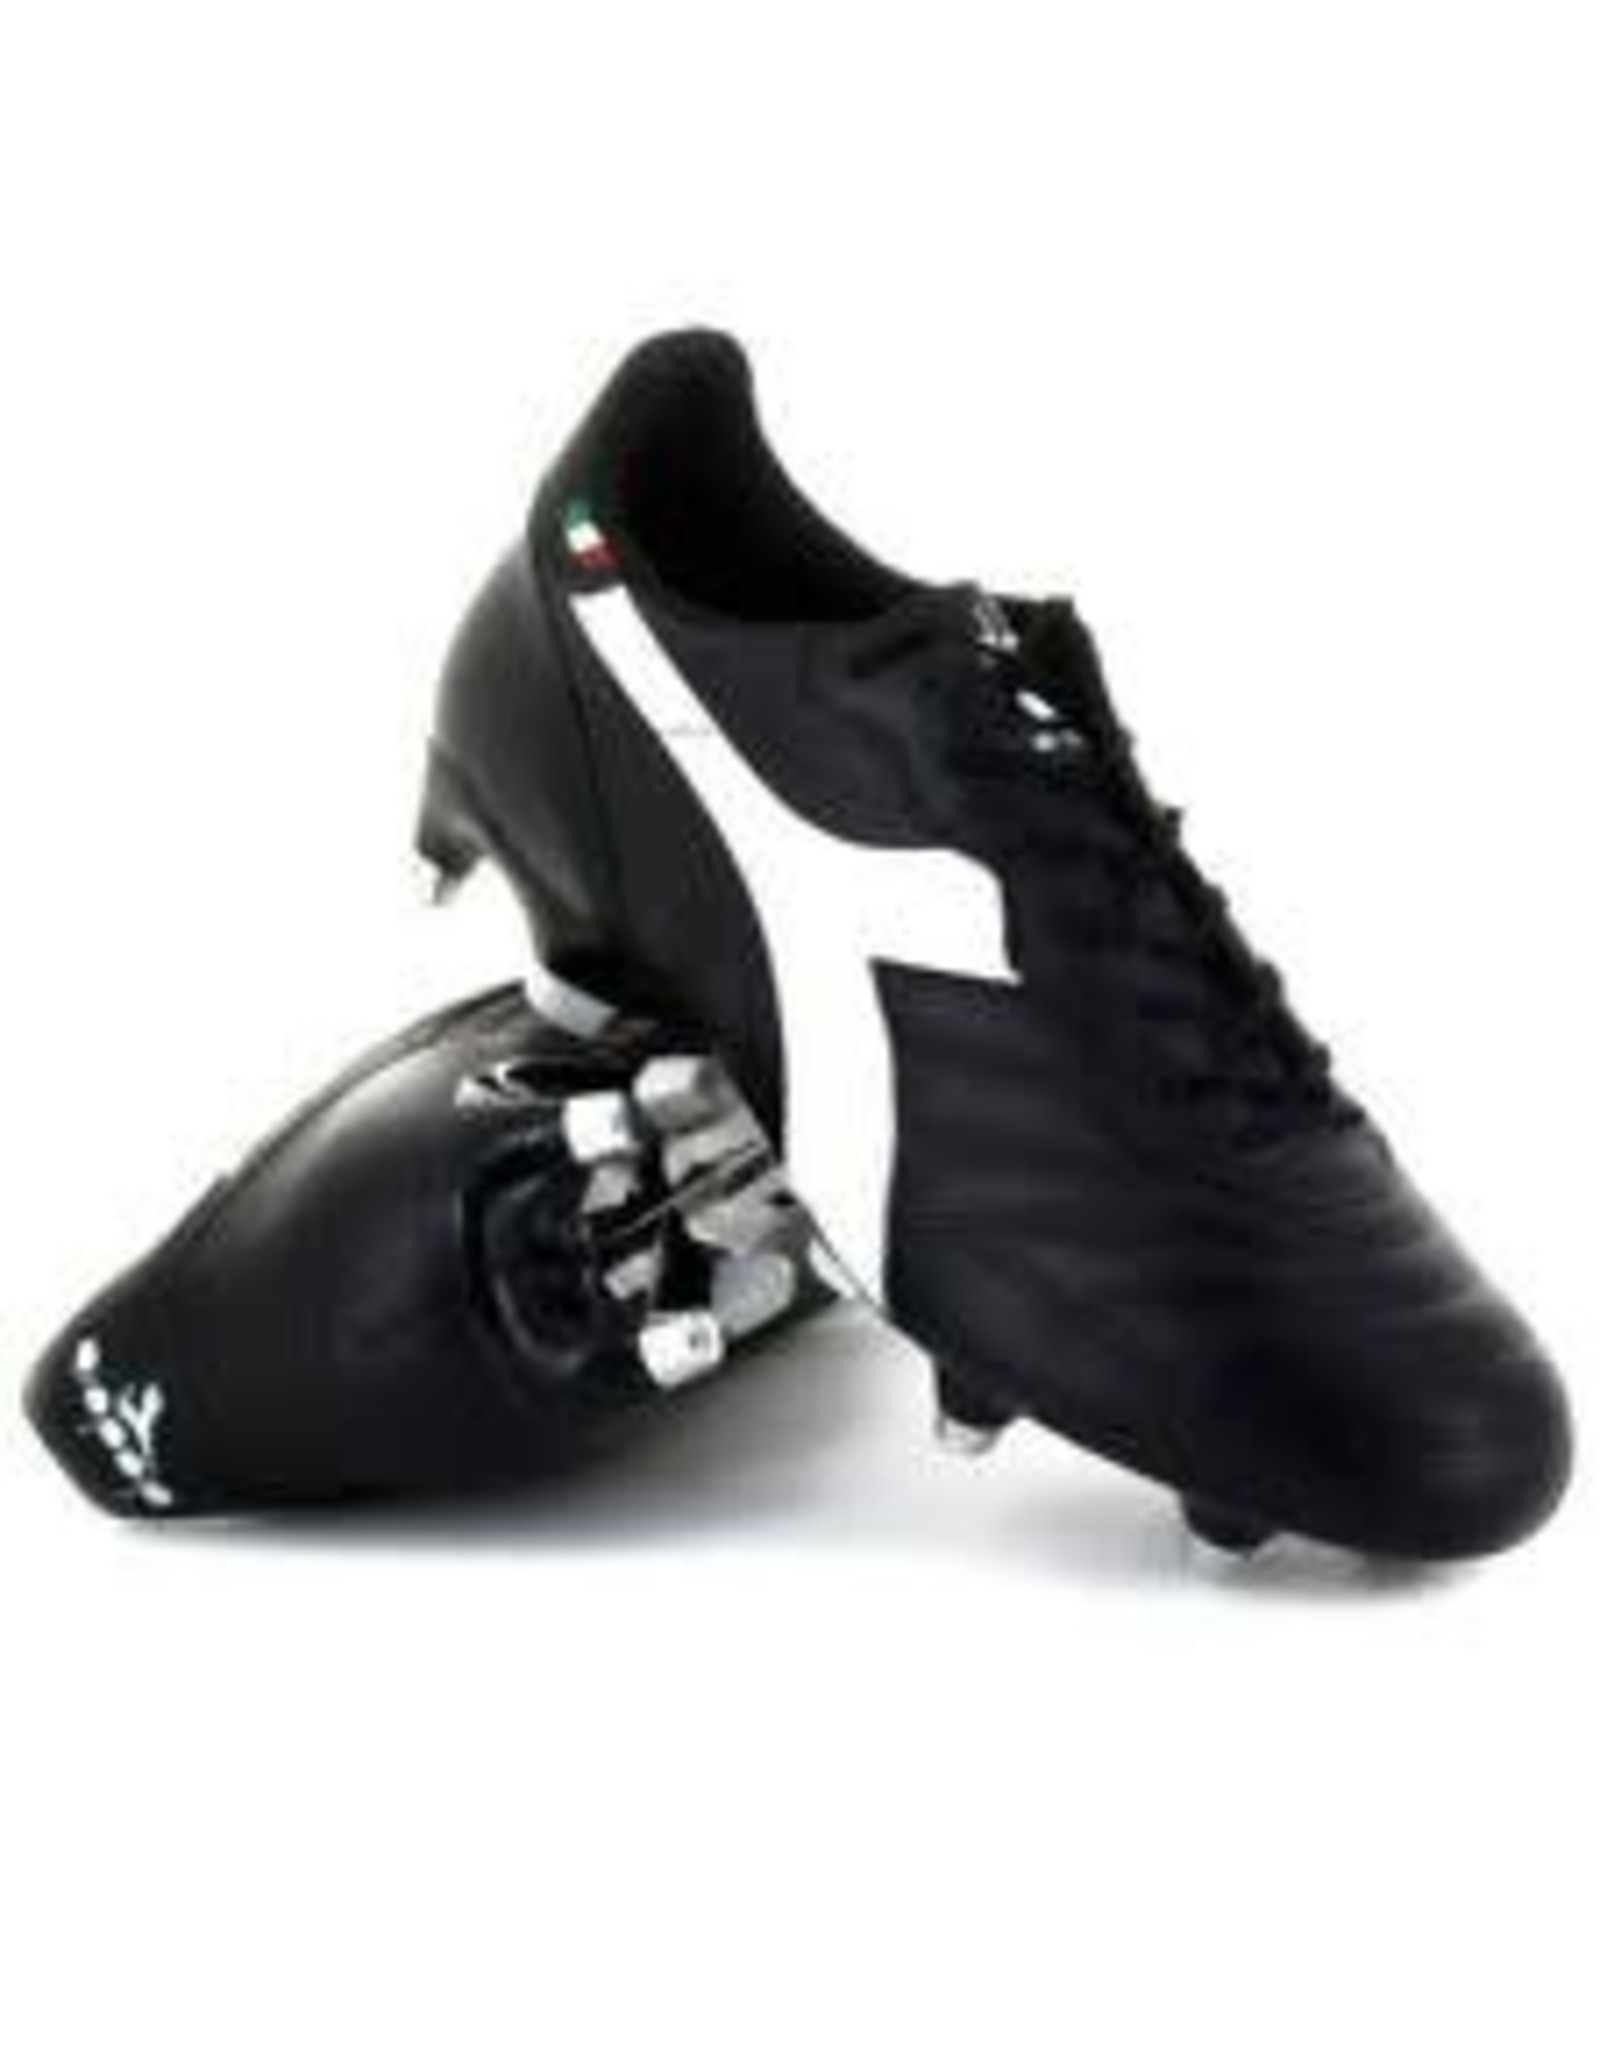 Diadora Diadora 650 III MDPU Cleats (Black/White)